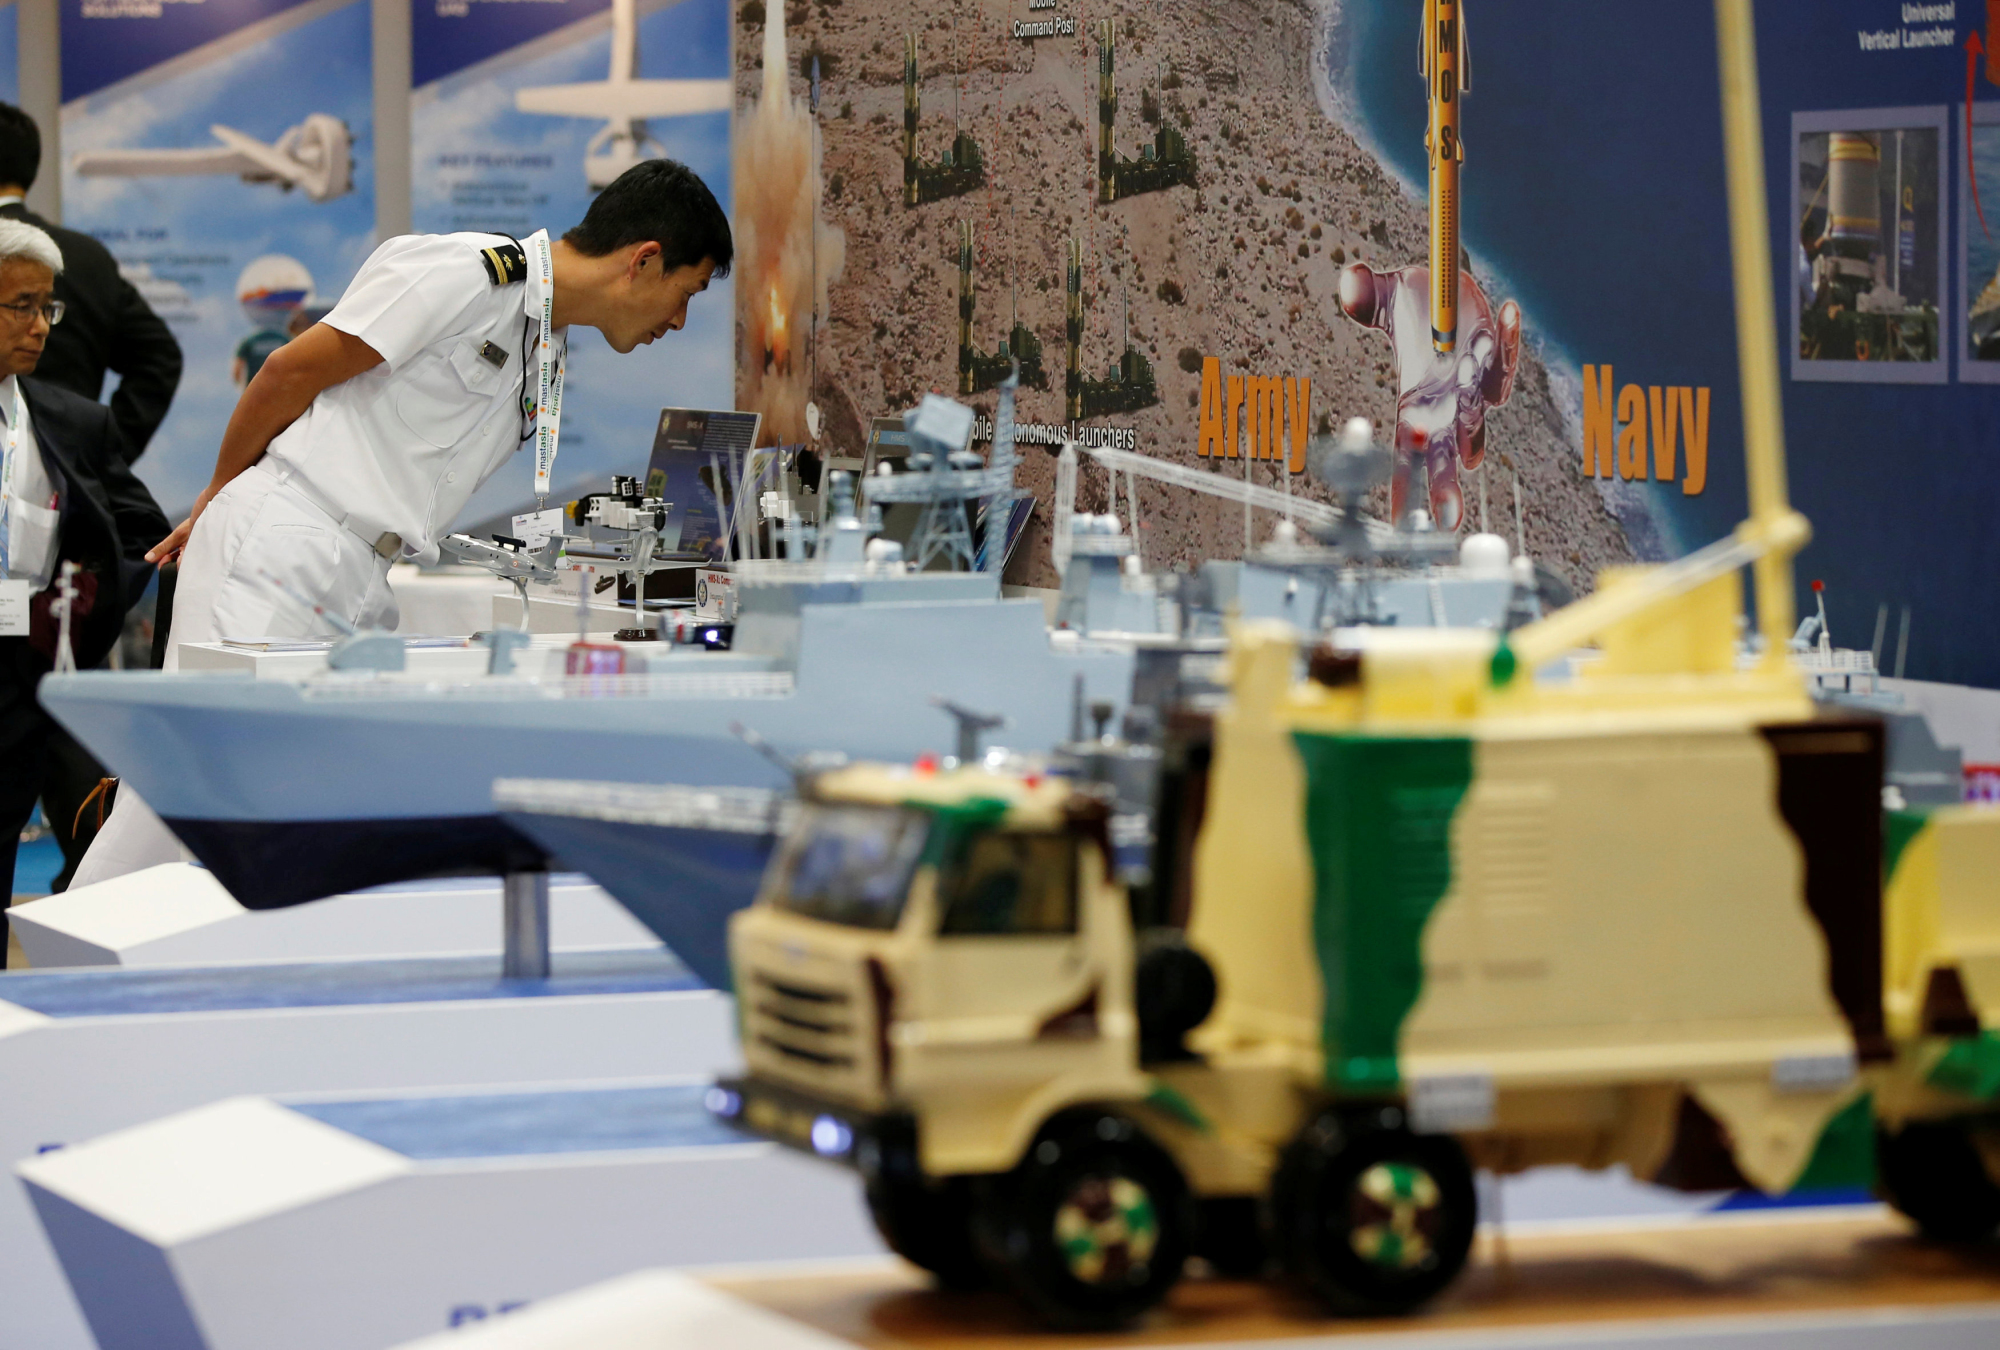 Visitors look at miniature models of military equipment at the Maritime Air Systems and Technologies Asia (MAST) show in the city of Chiba Monday.   REUTERS